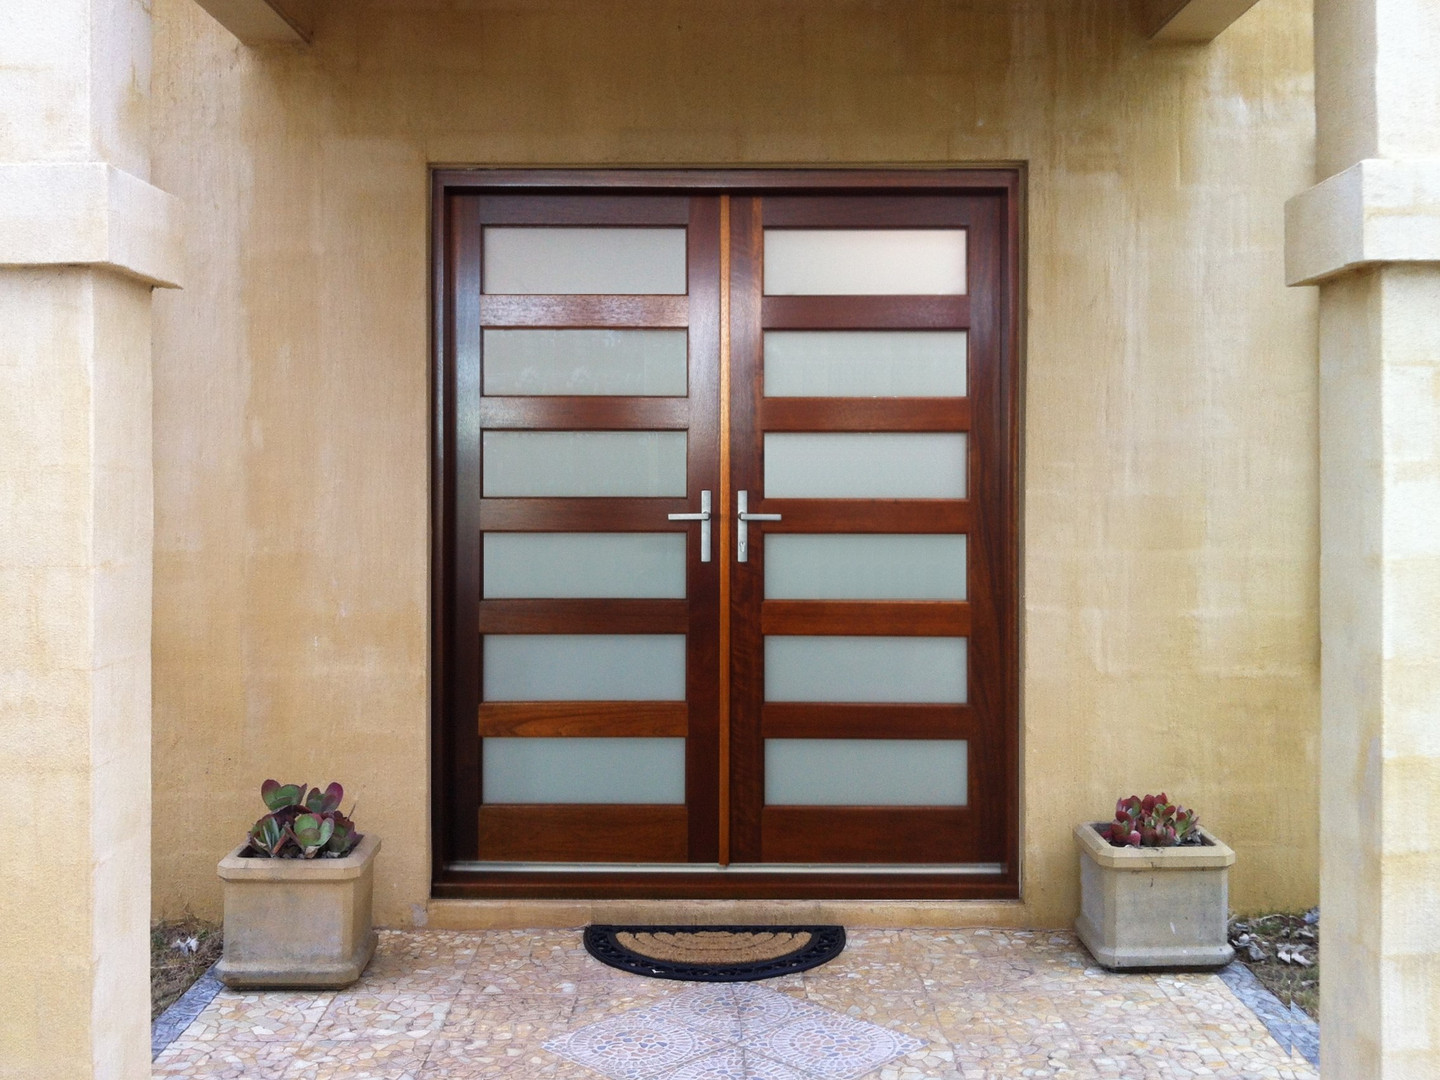 Bouvard 6 Light Entry Doors.jpg